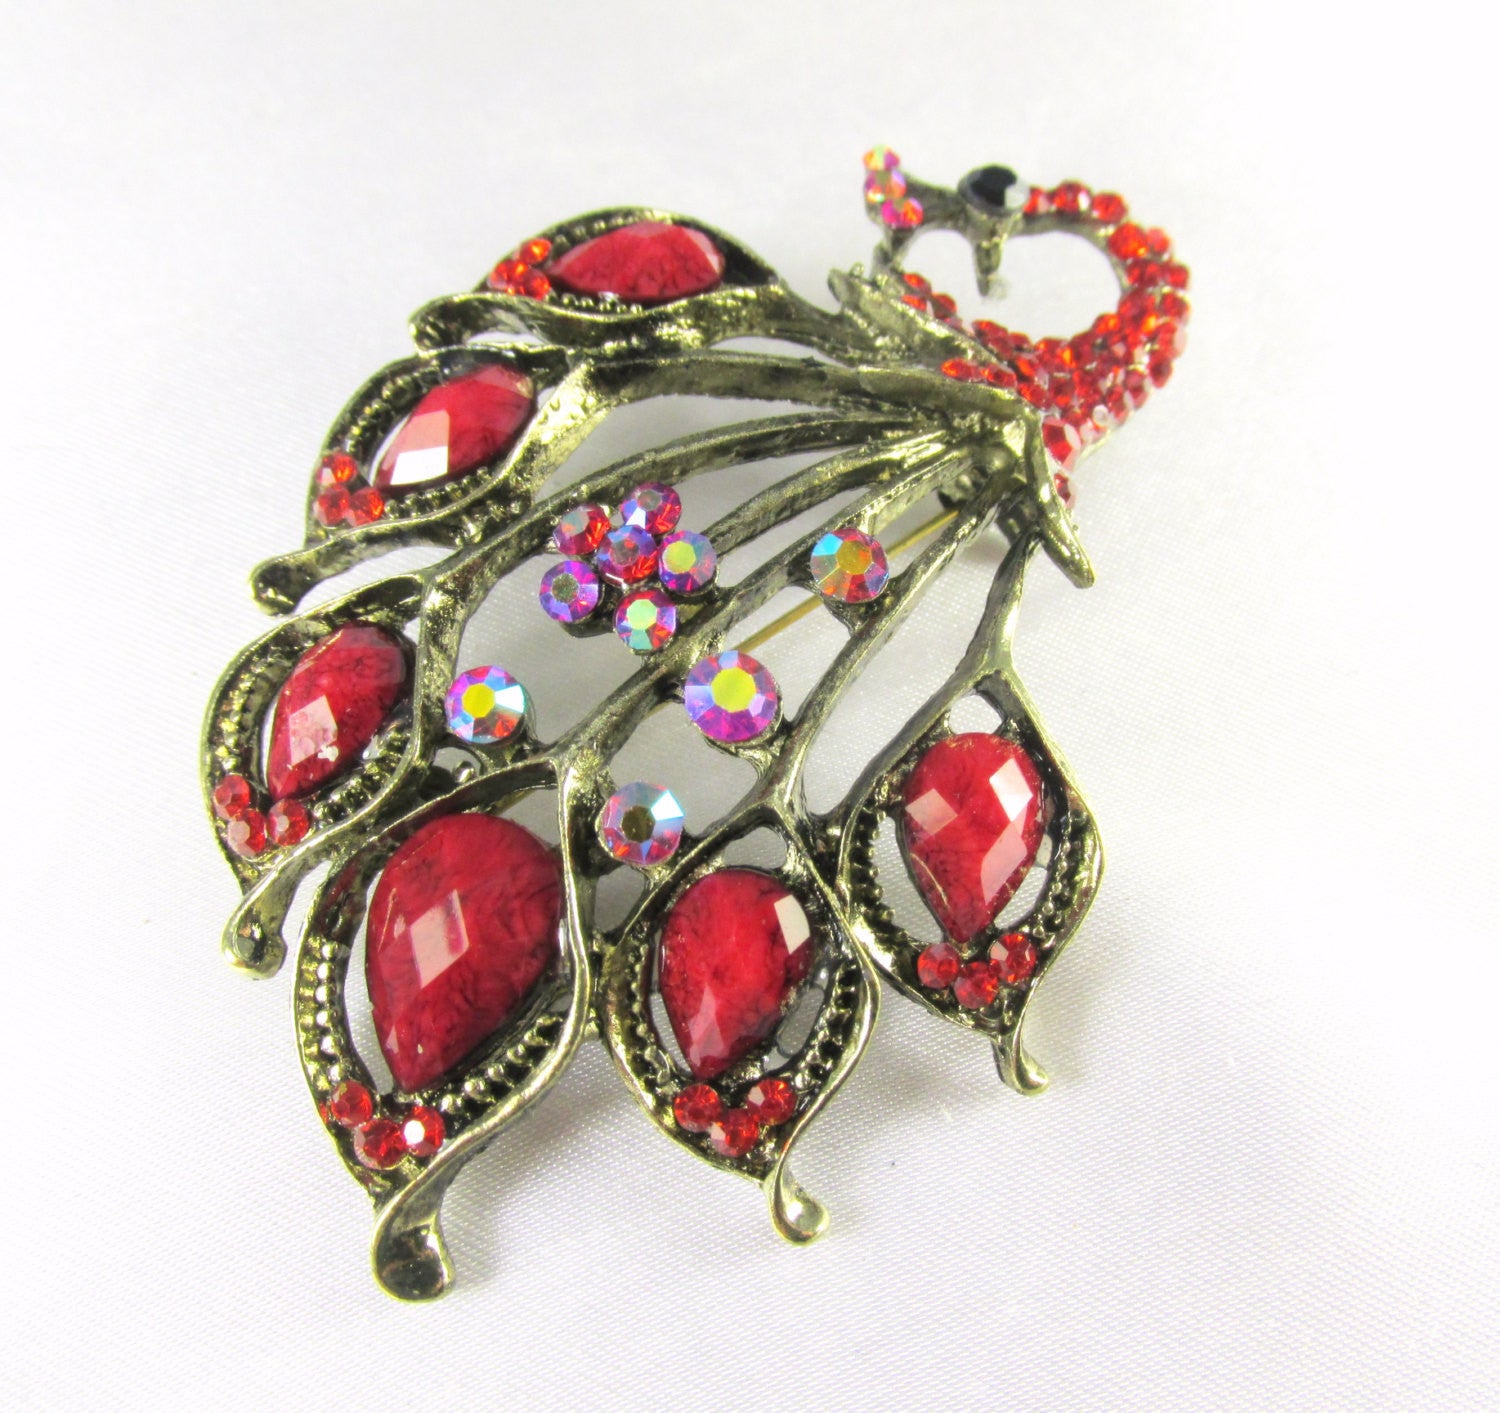 Marsala Red Peacock Brooch in Antique Gold - Odyssey Cache - 1